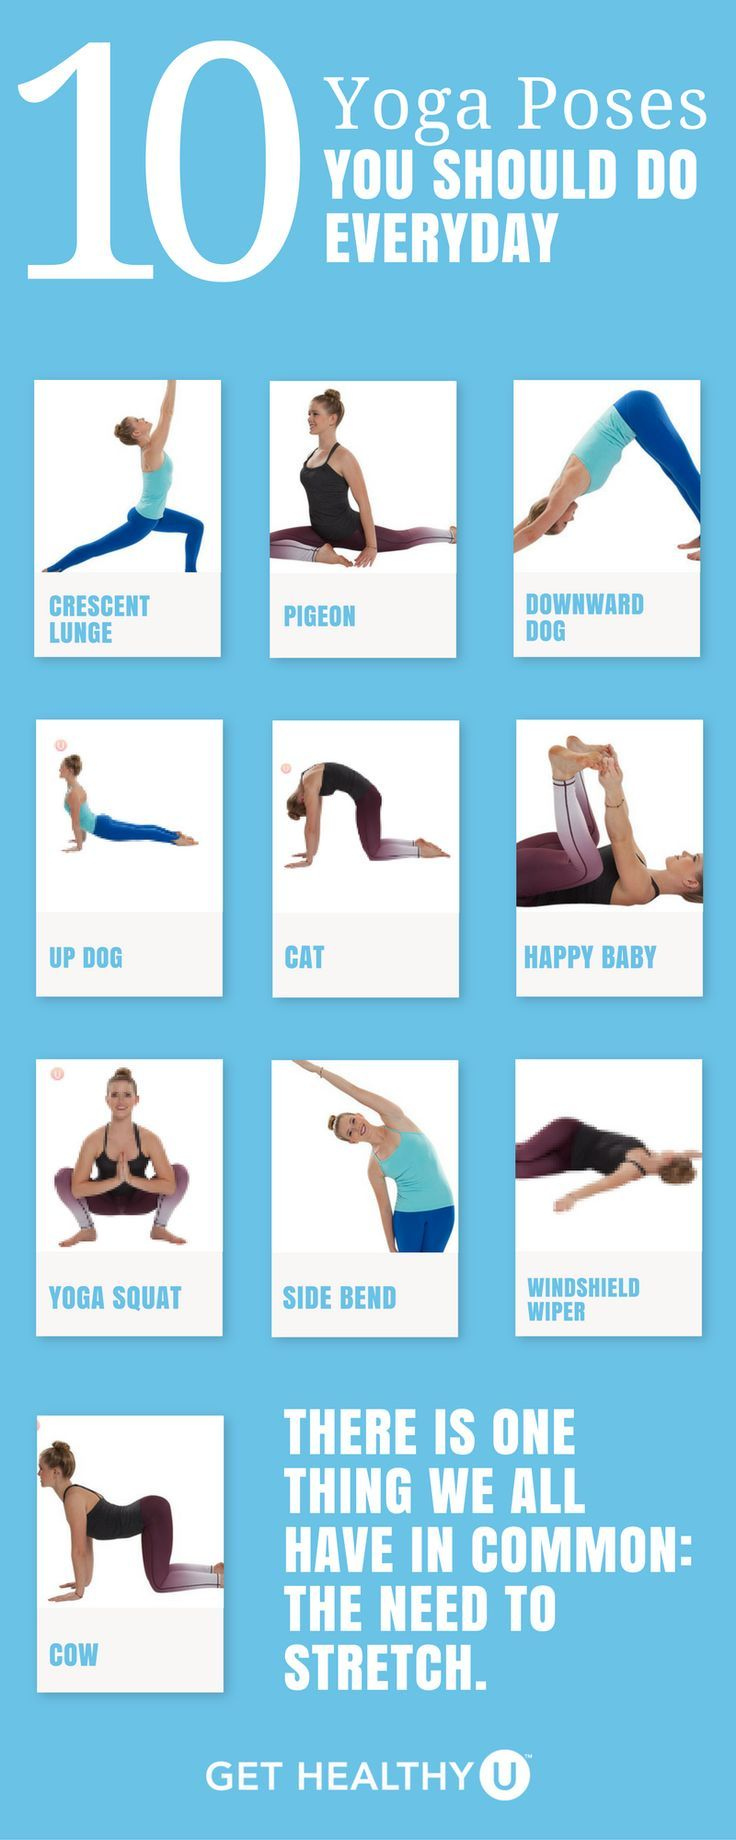 This simple yoga workout gives you 10 yoga poses you should do every day. You ca...